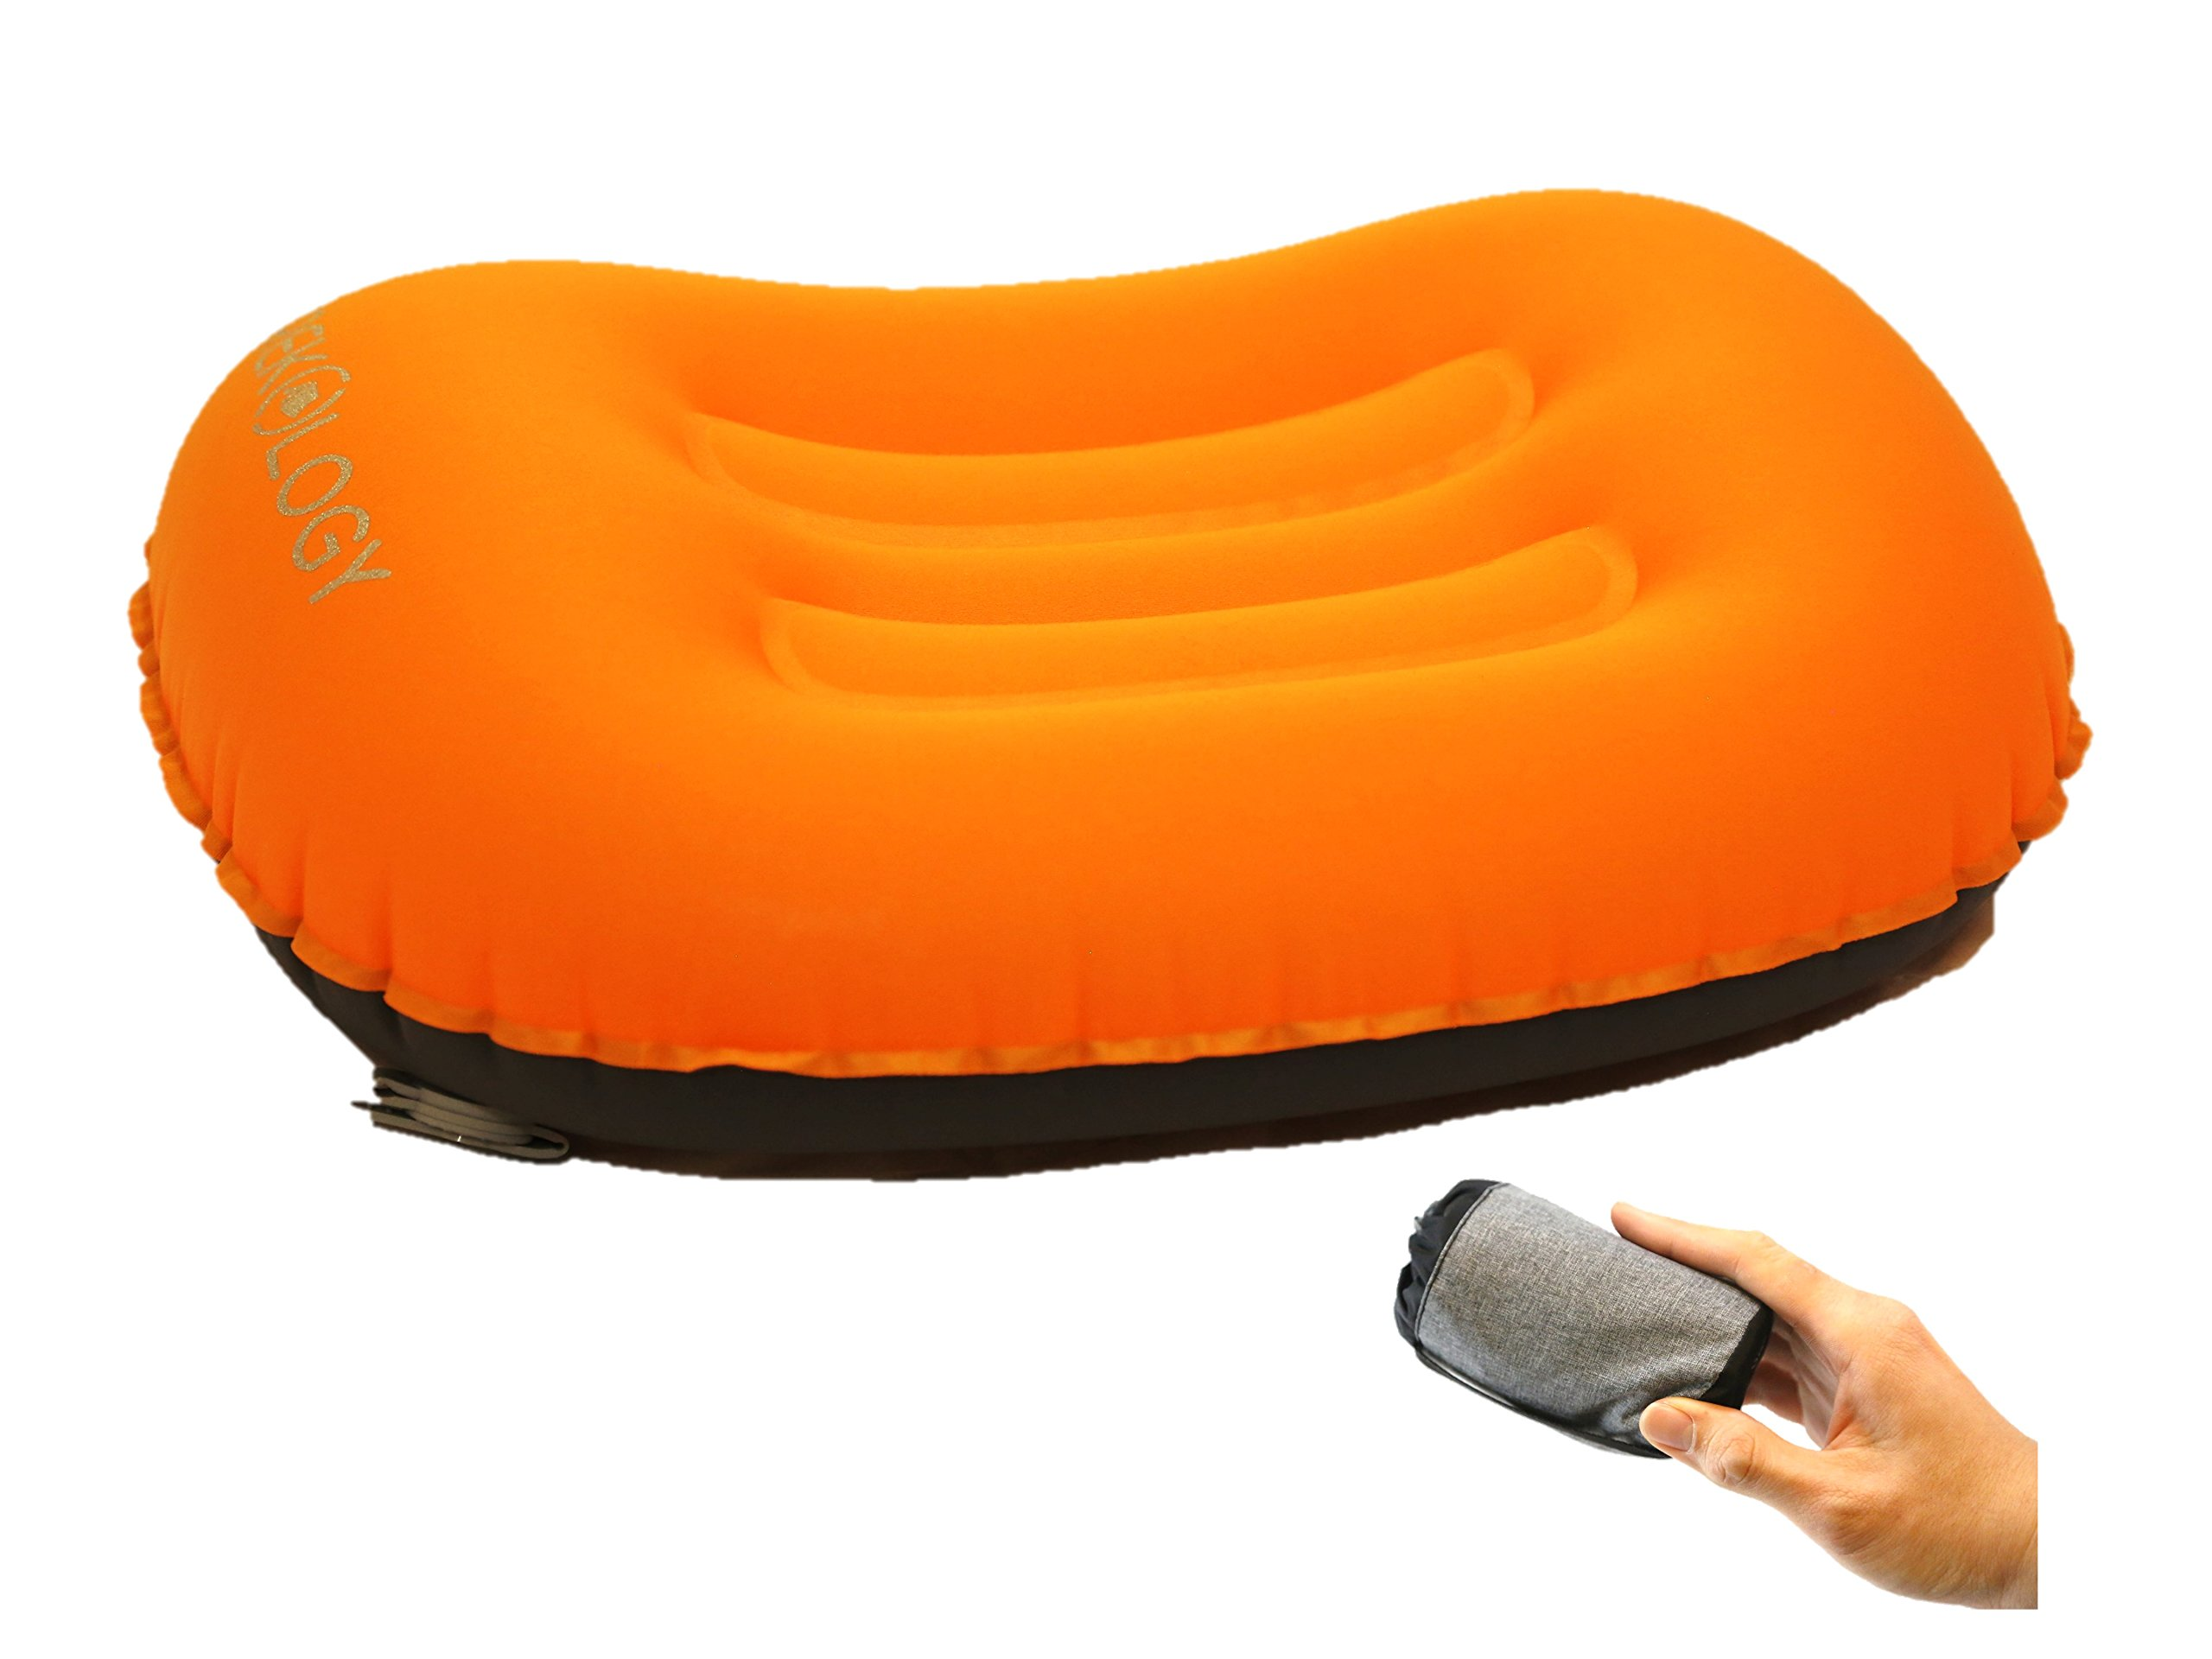 Trekology Ultralight Inflating Travel/Camping Pillows - Compressible, Compact, Inflatable, Comfortable, Ergonomic Pillow for Neck & Lumbar Support While Camp, Backpacking (Orange.)